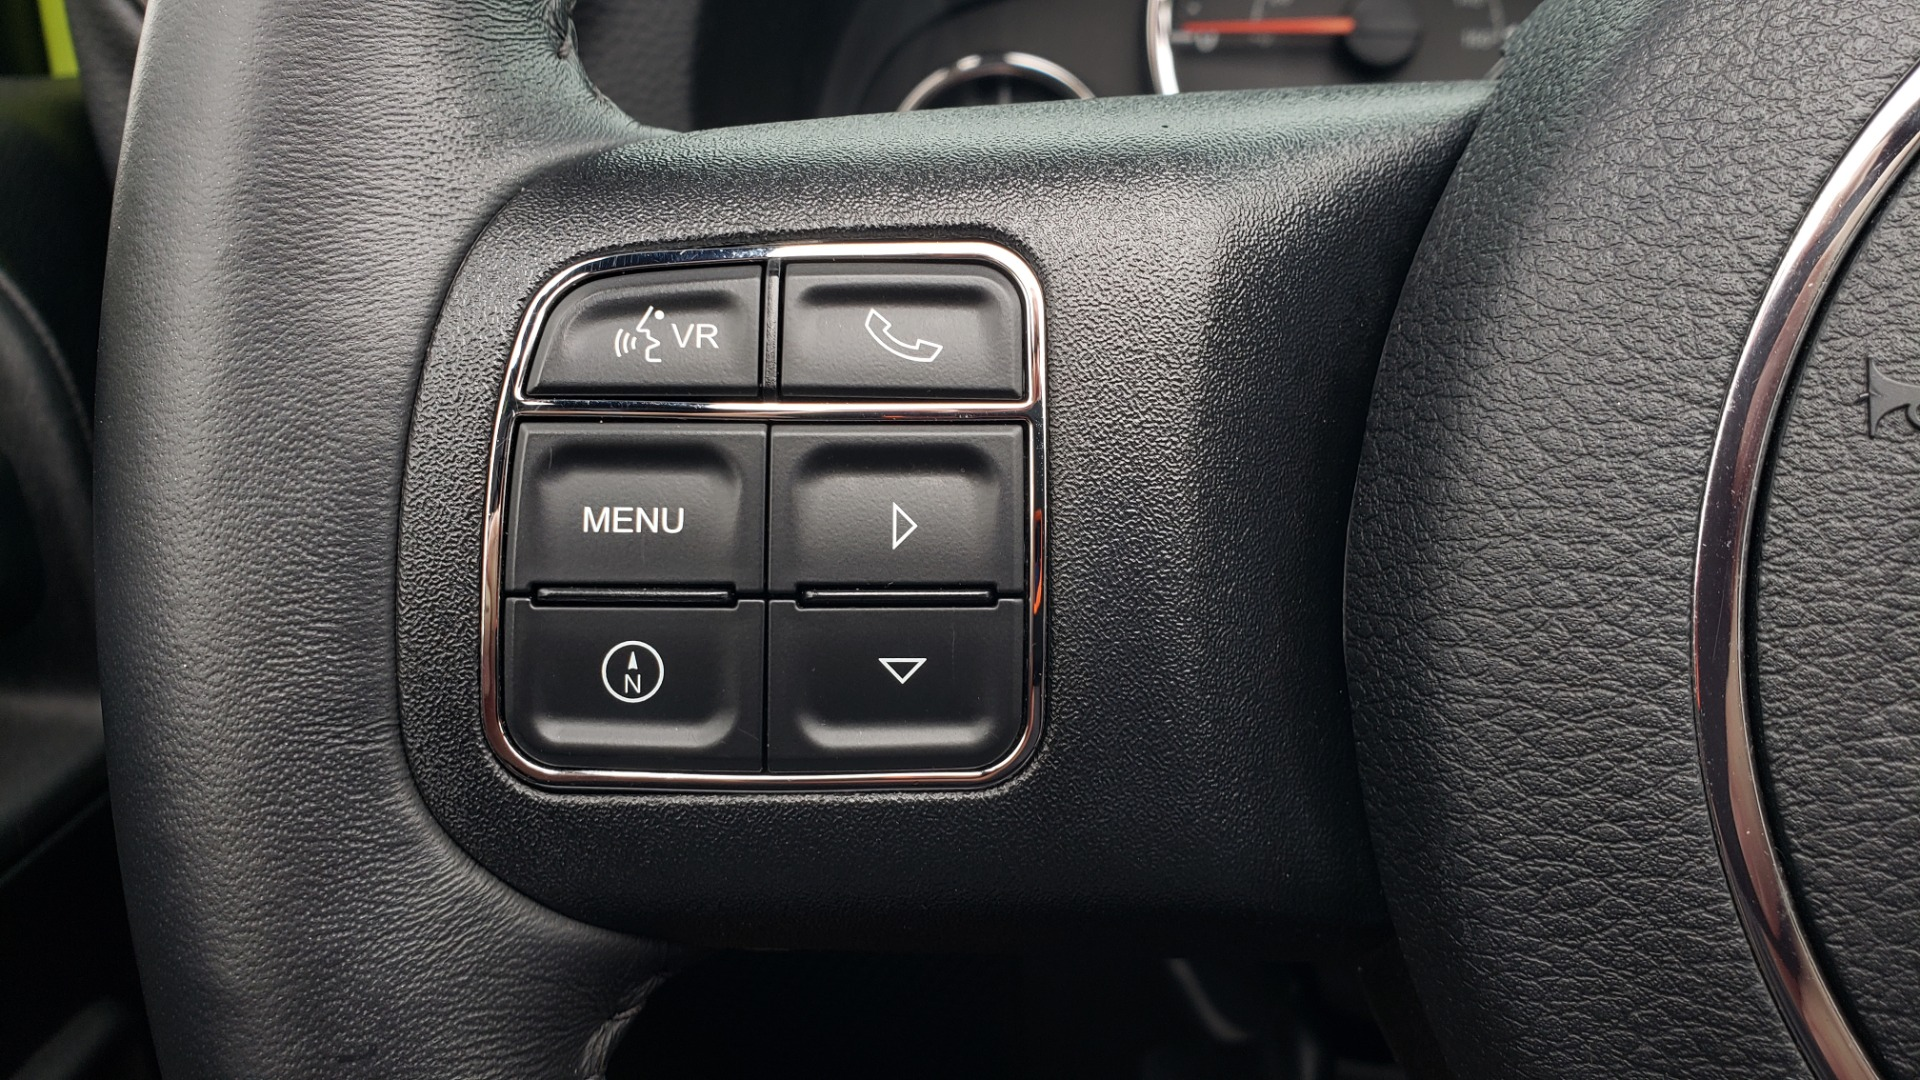 Used 2016 Jeep WRANGLER UNLIMITED SPORT 4X4 / POWER TOP / NAV / HTD STS / REARVIEW for sale Sold at Formula Imports in Charlotte NC 28227 56